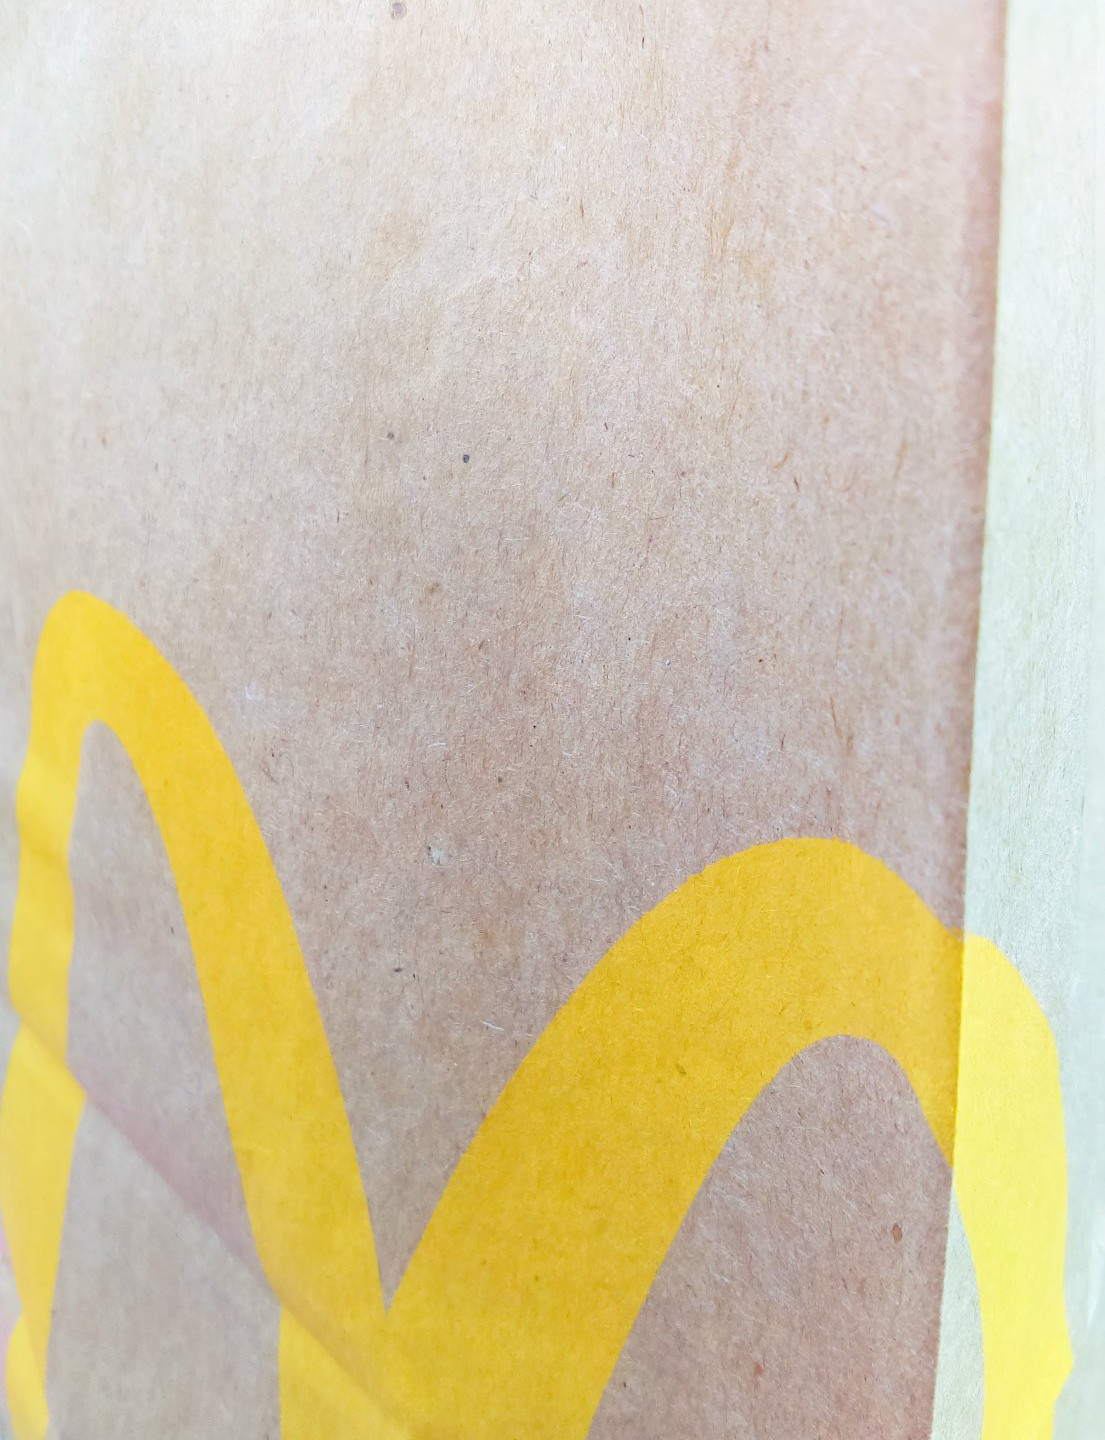 golden arches on the bag